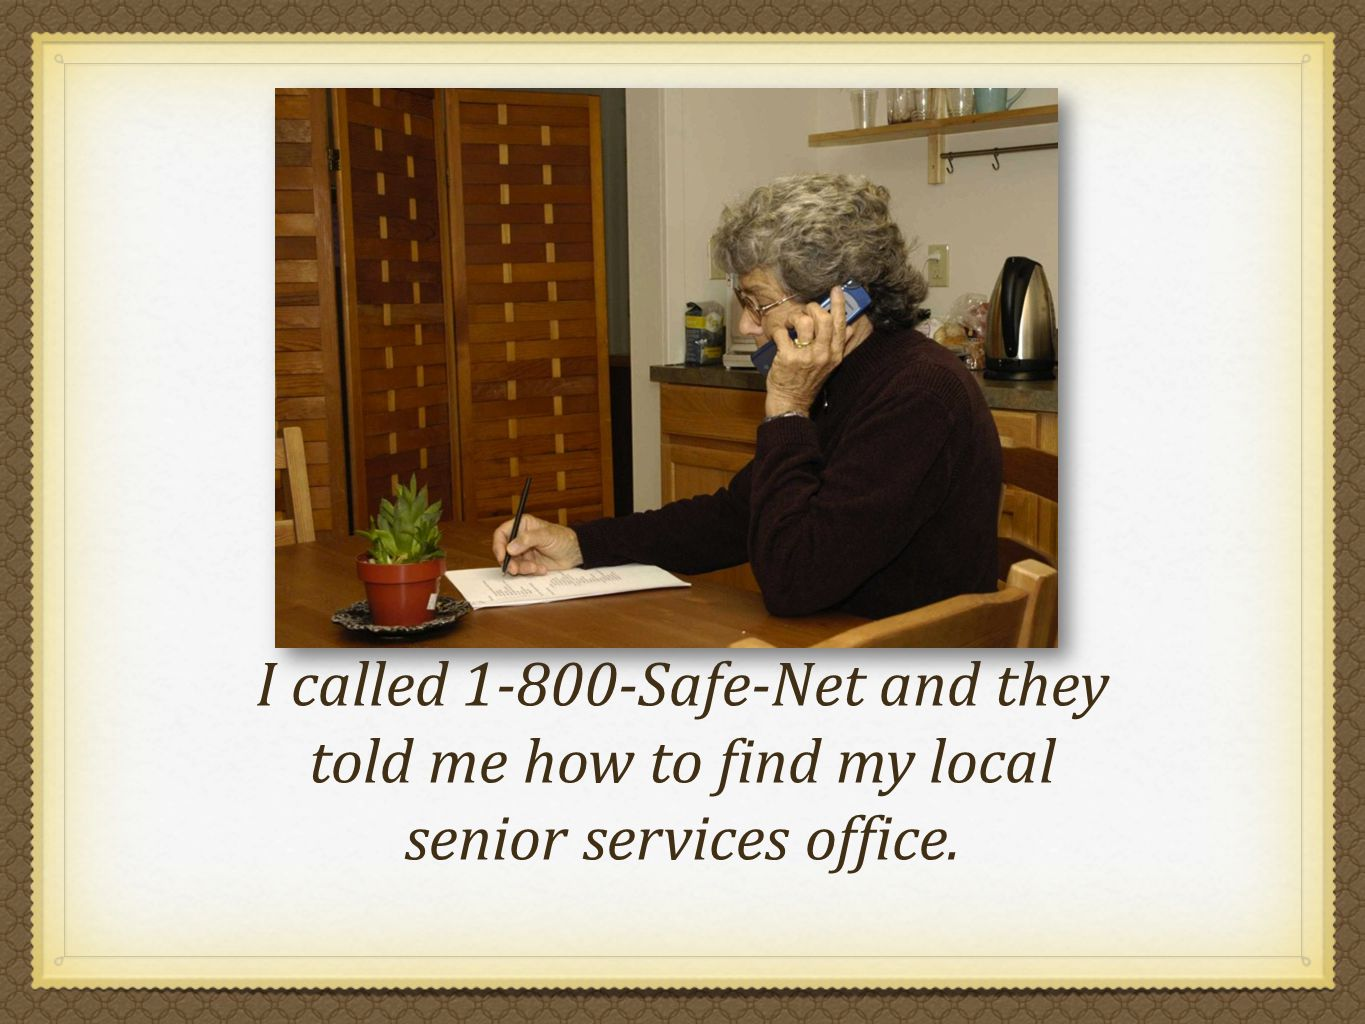 I called 1-800-Safe-Net and they told me how to find my local senior services office.